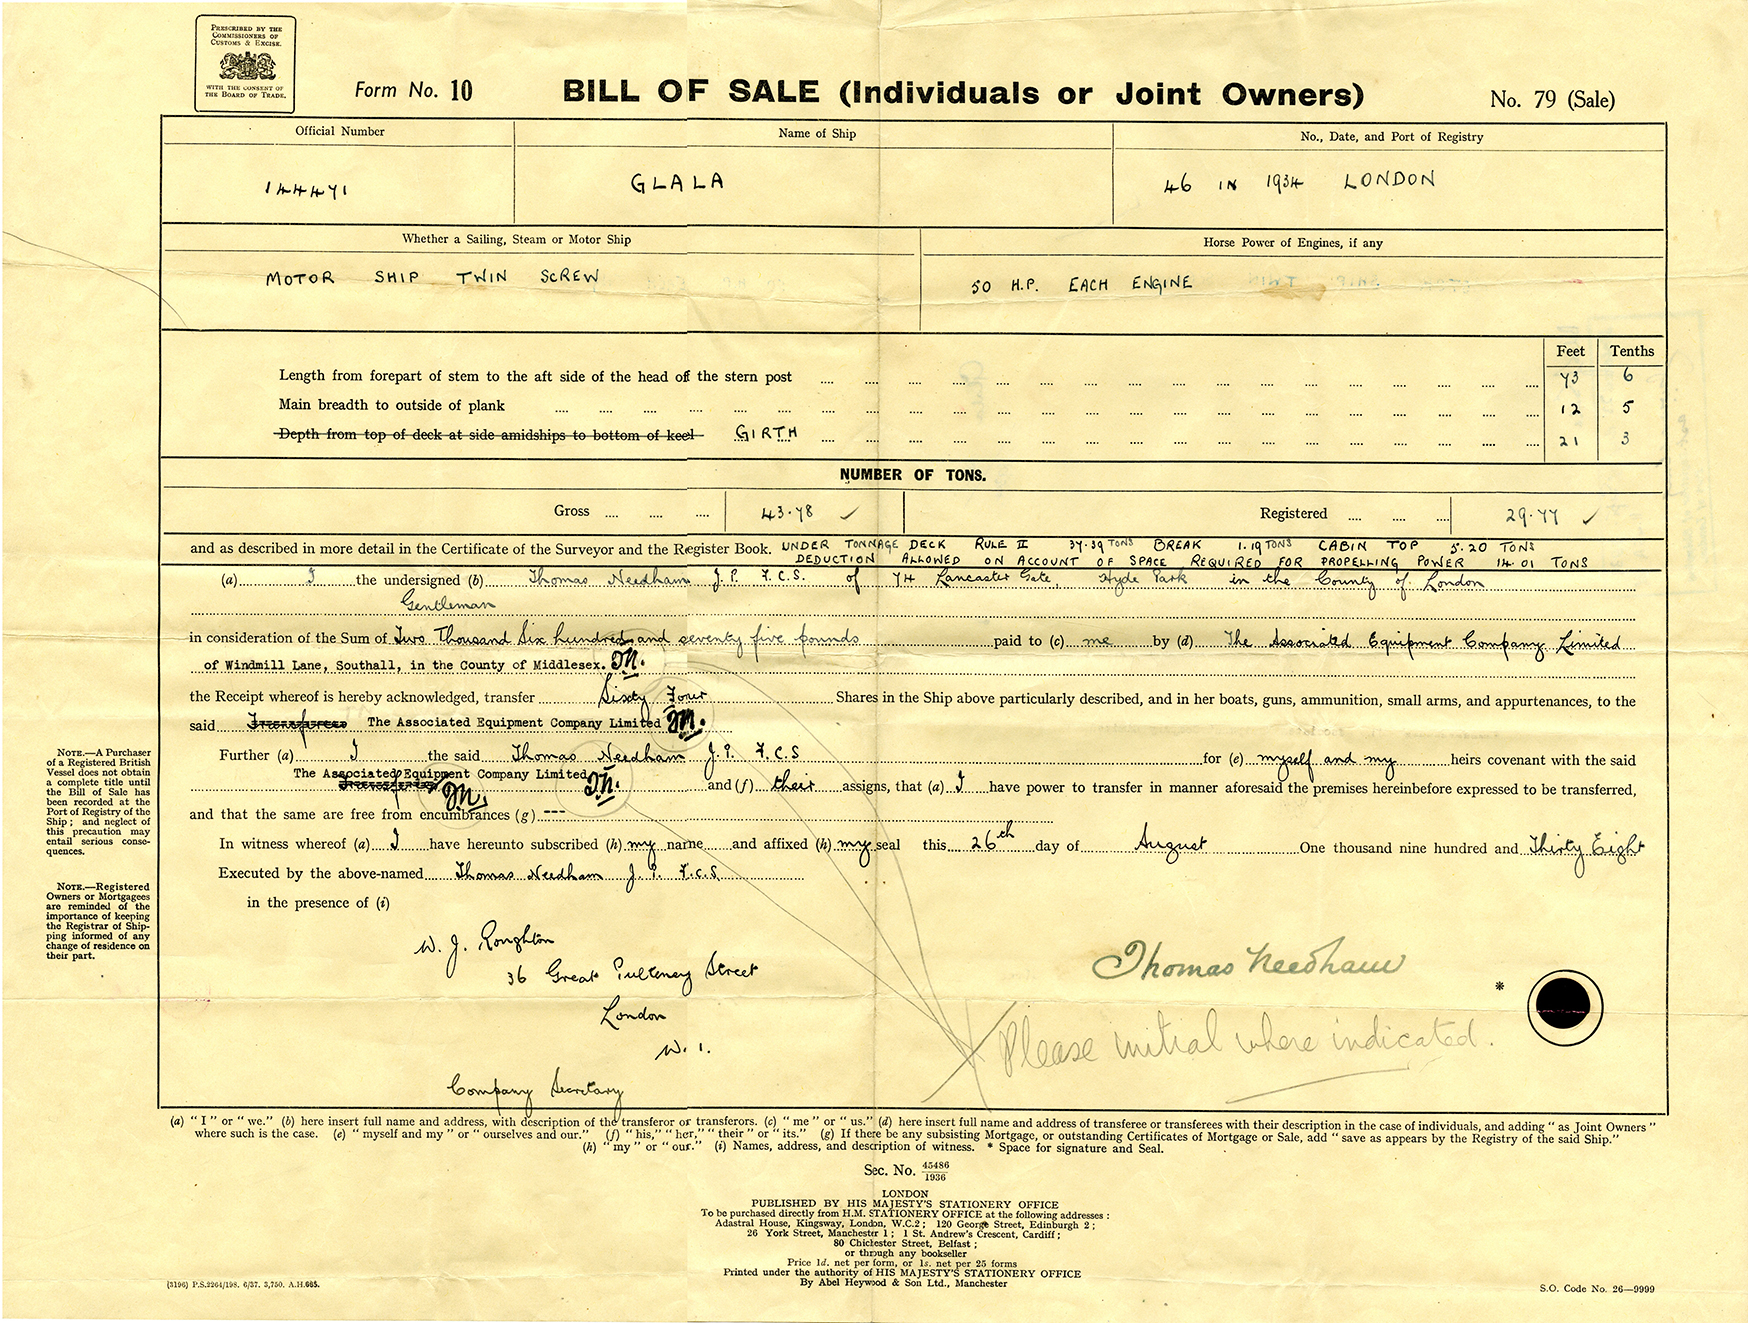 Bill of Sale for Glala 1938